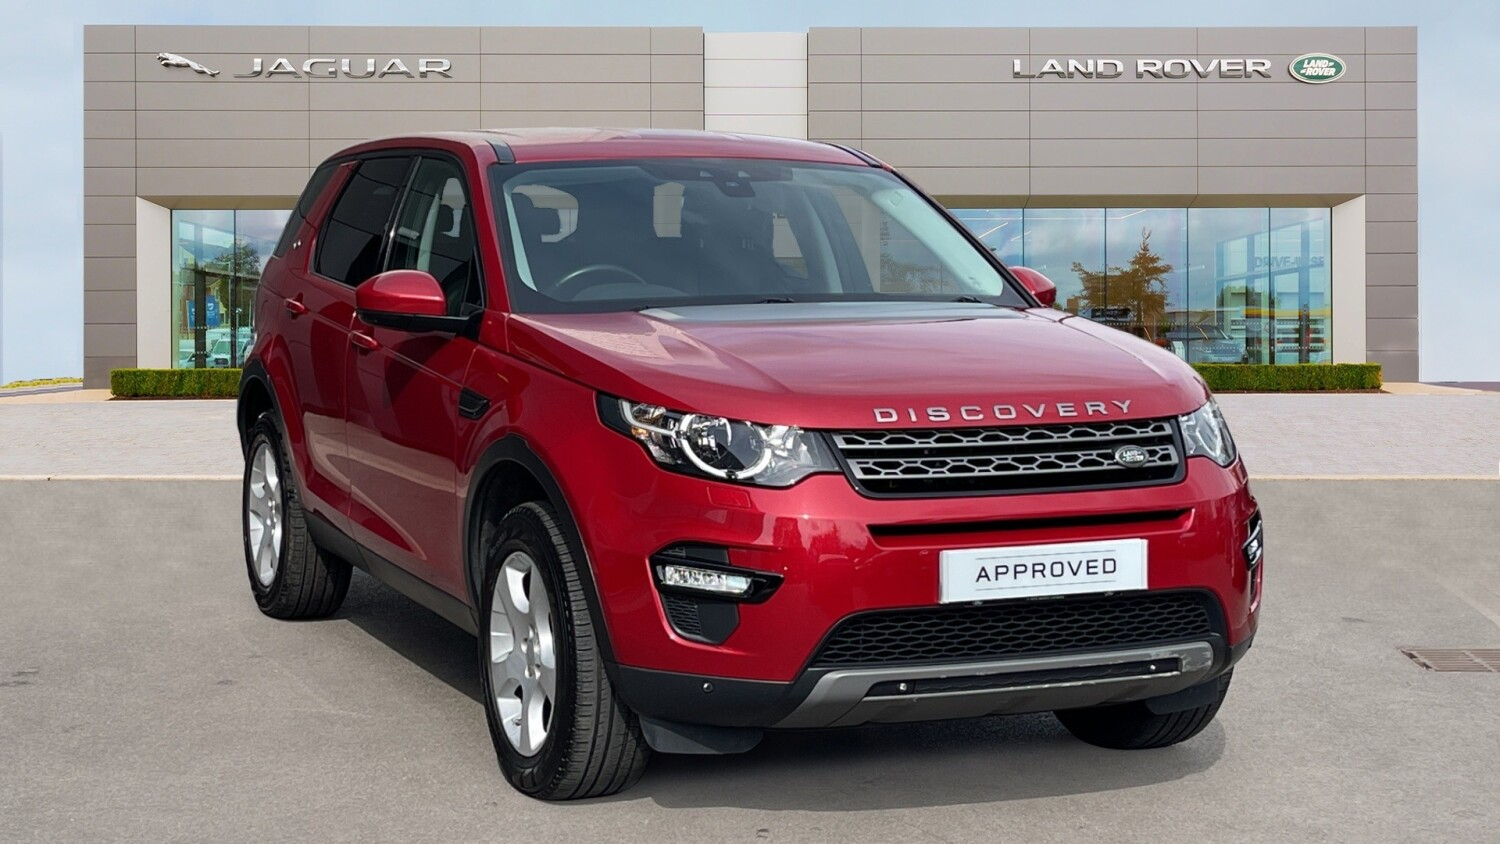 Used Land Rover Discovery Sport 2 0 Td4 180 Se Tech 5dr